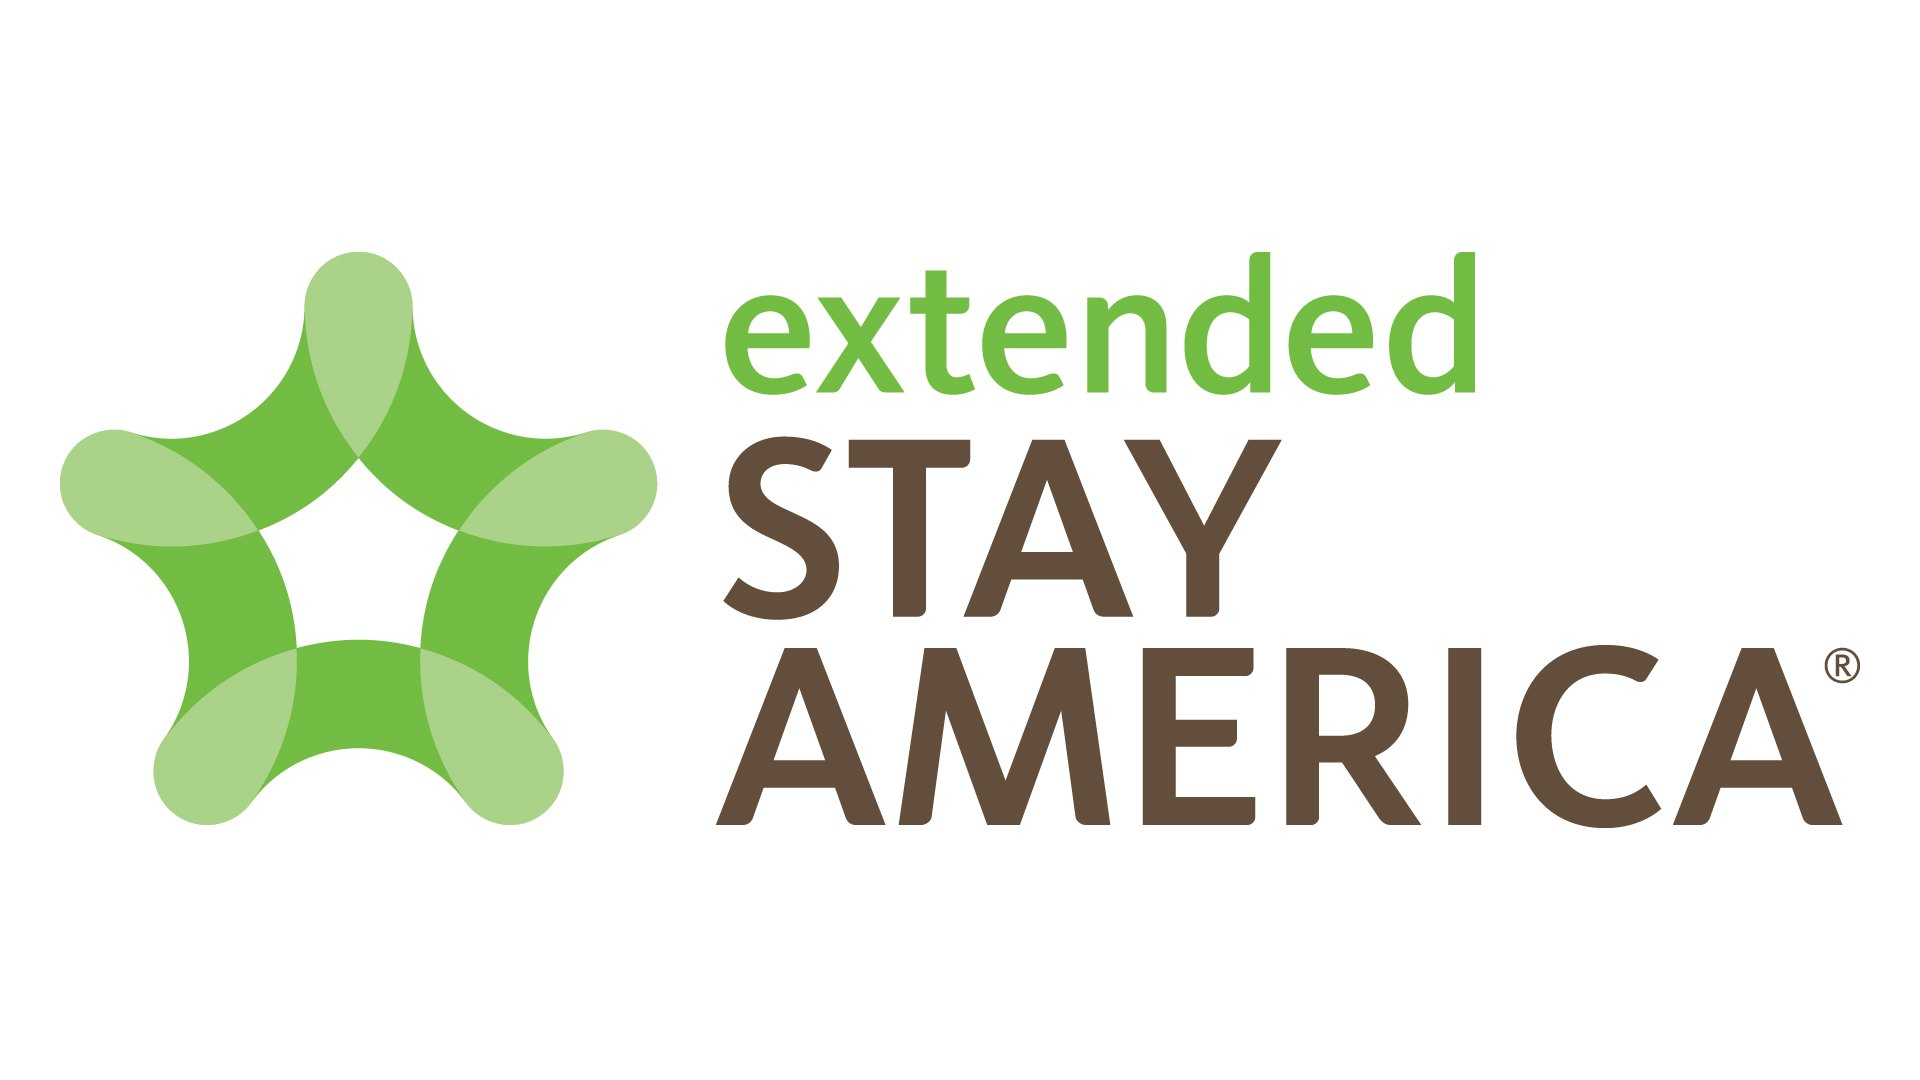 Extended Stay America Serves Up Free Breakfasts With 'Grab and Go'